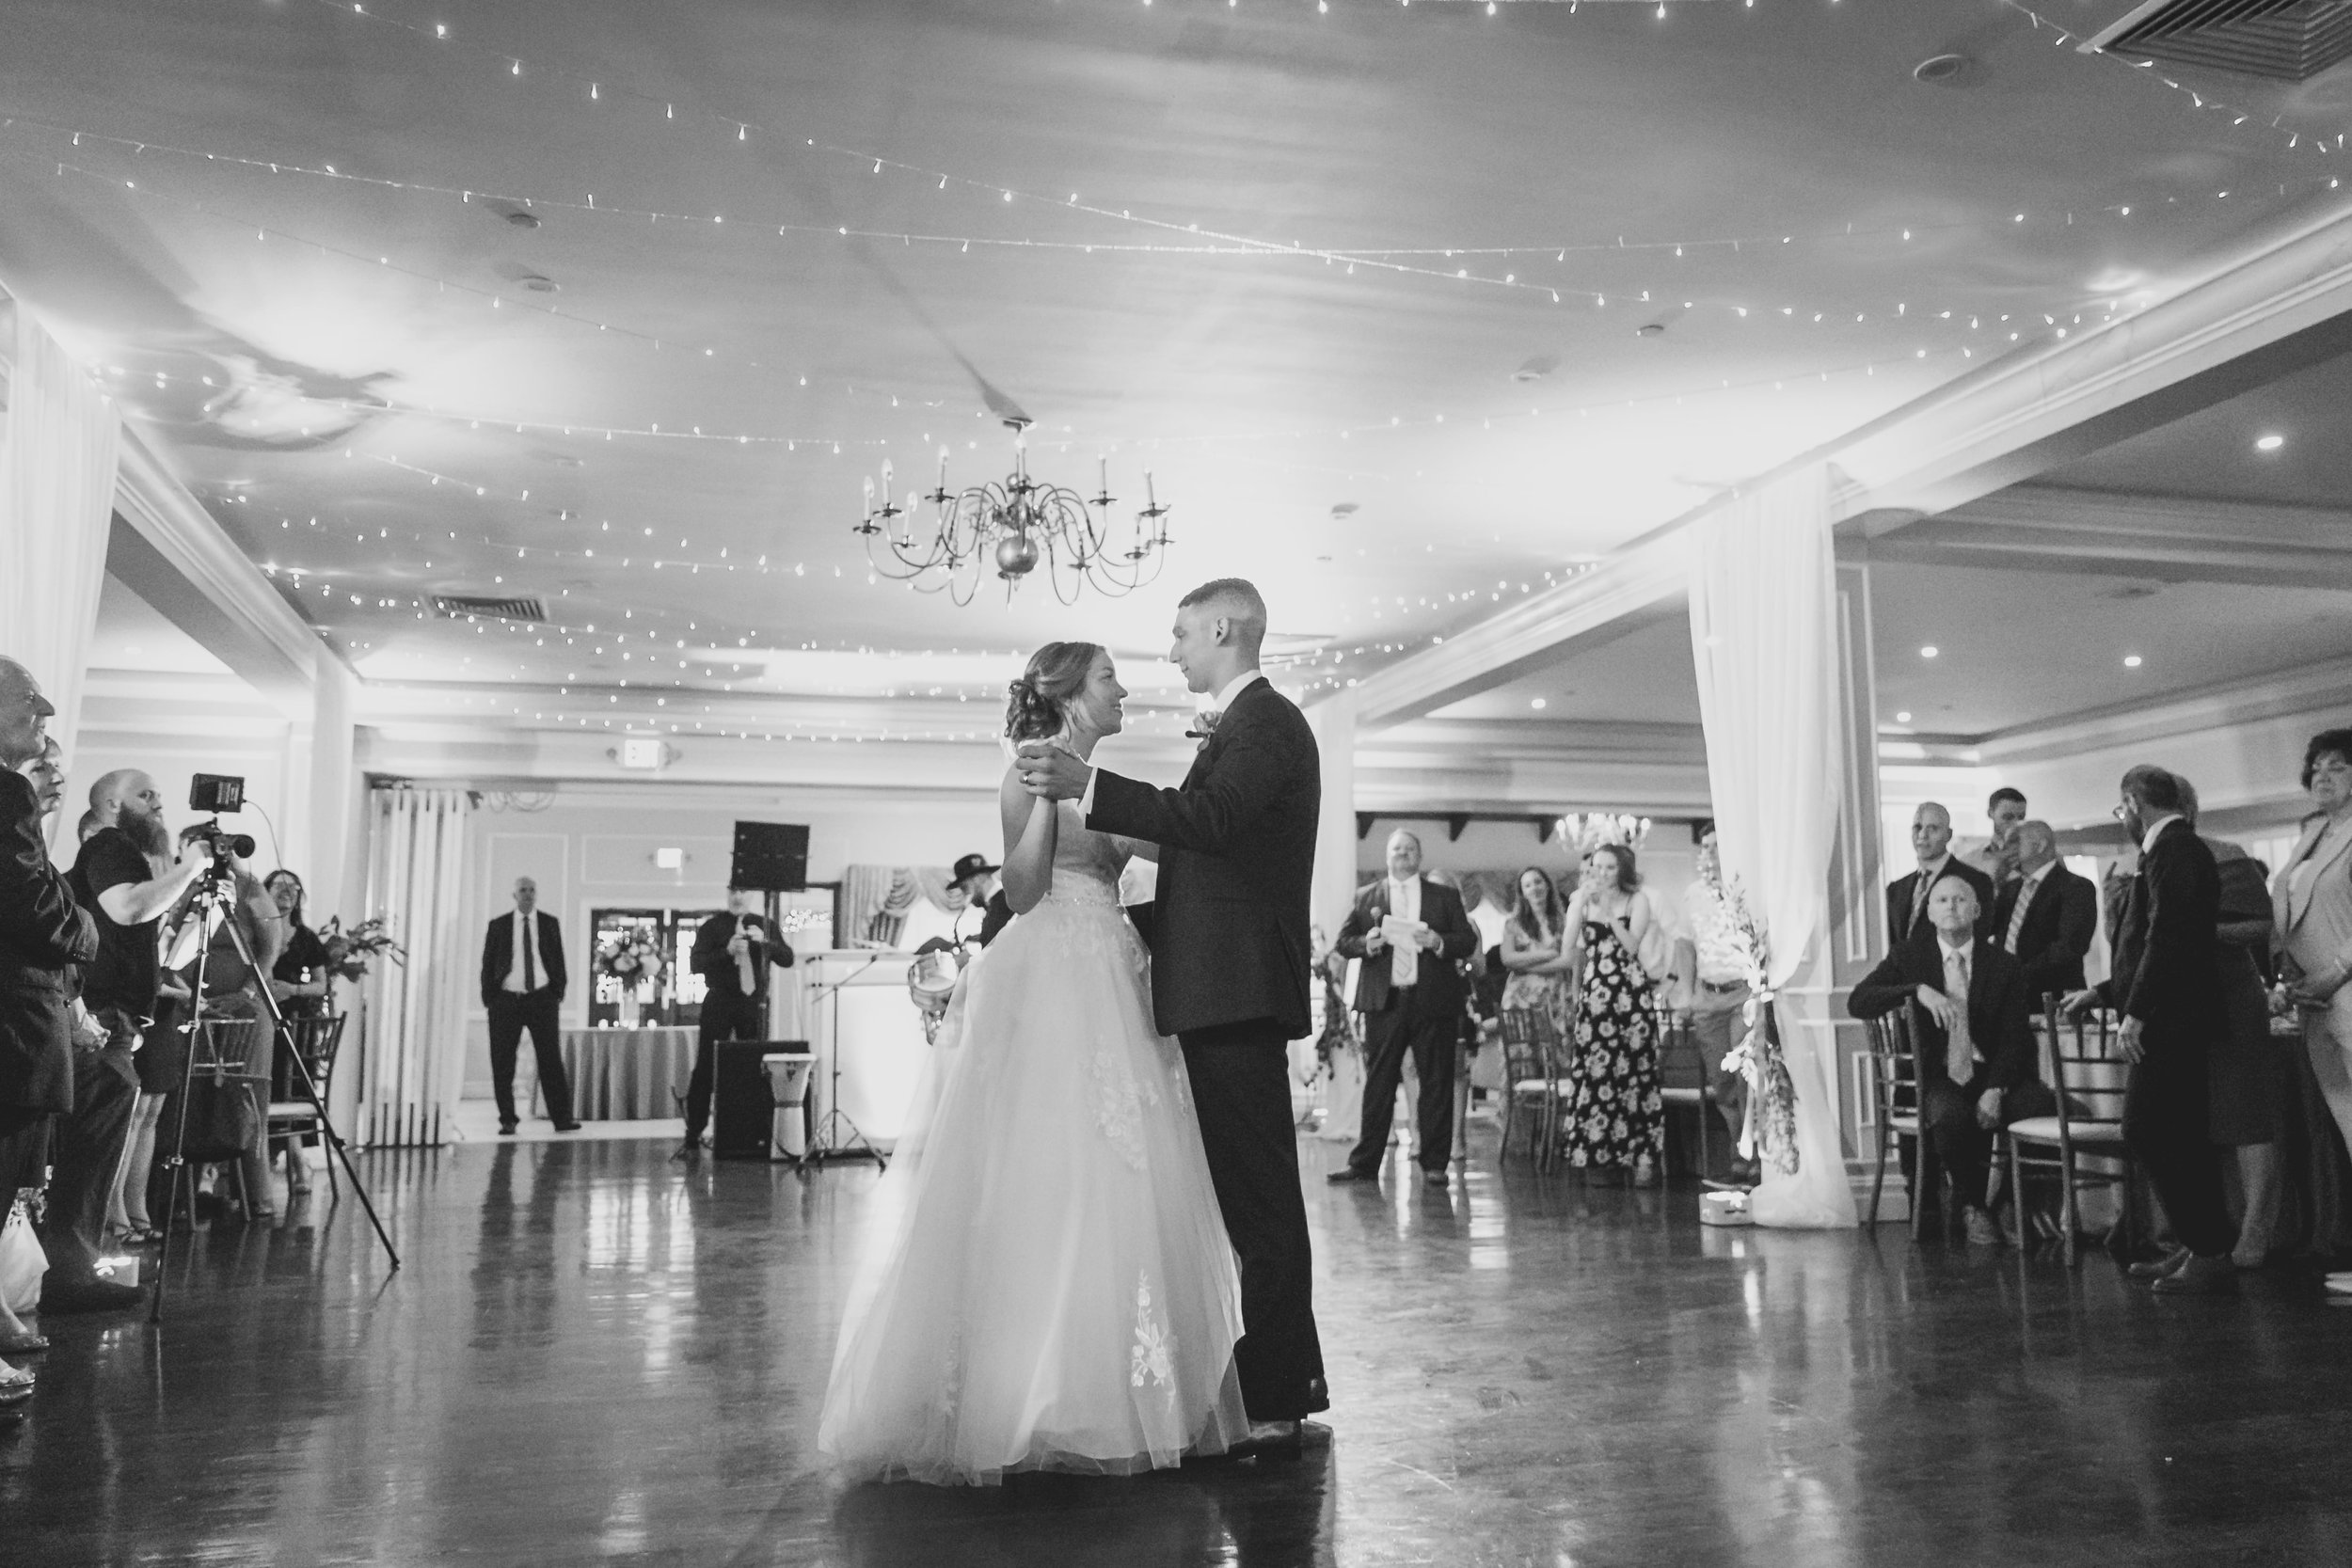 Bride and groom sharing their first dance in a ballroom surrounded by guests.